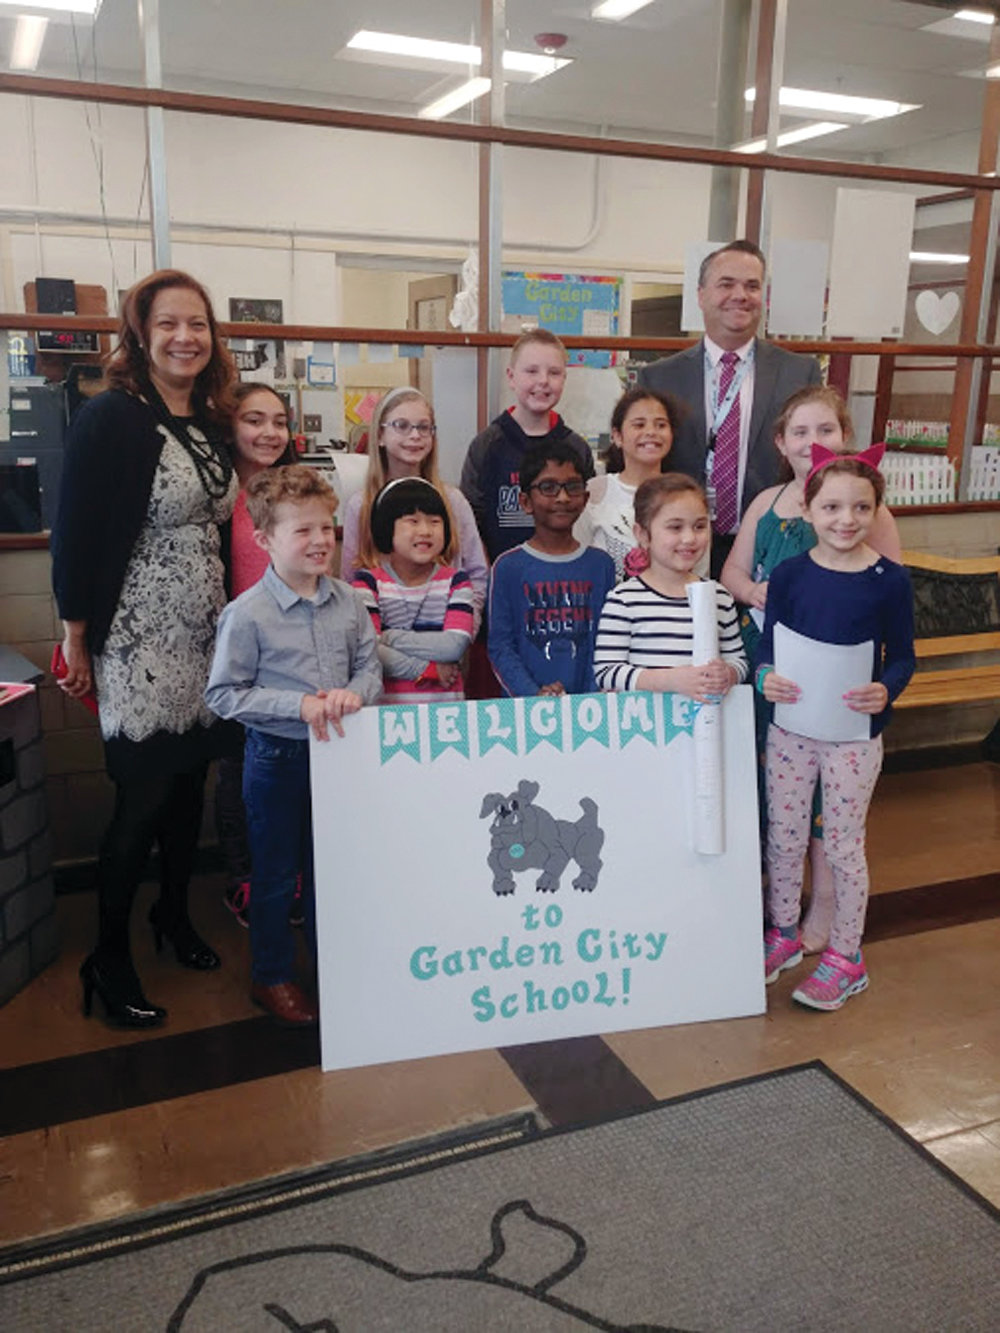 WELCOMING COMMITTEE: Angélica Infante-Green, Rhode Island's new education commission, poses with Garden City Principal Bryan Byerlee and the student representatives who welcomed her to the school.